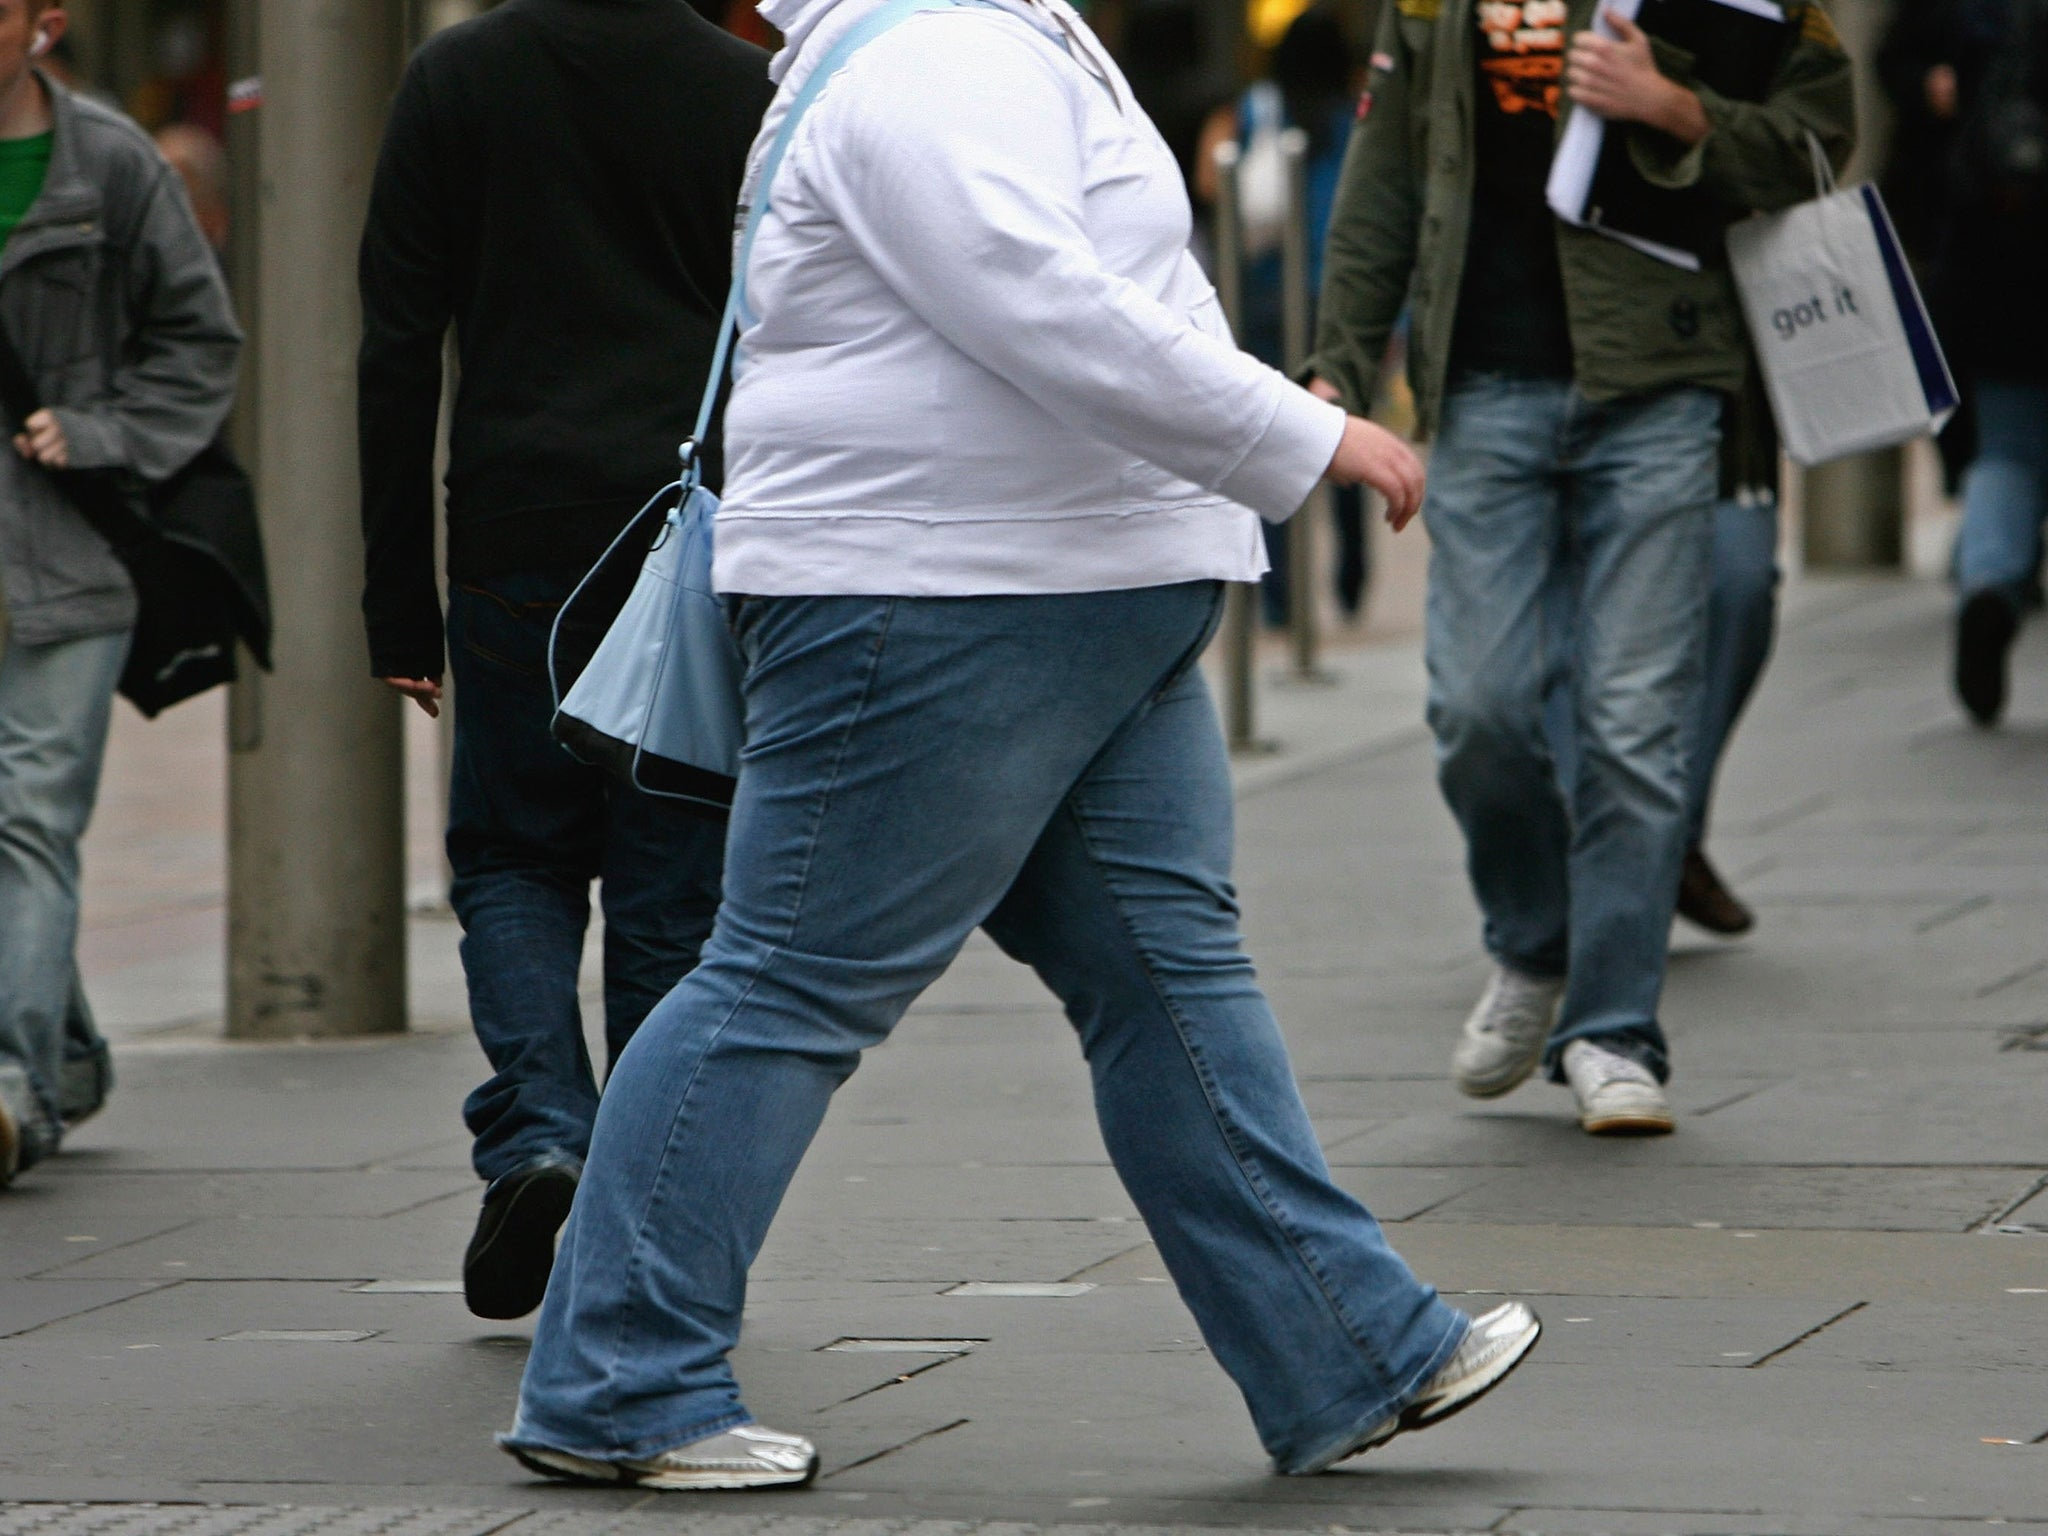 You don't need to do 'one iota' of exercise to lose weight, says scientific study